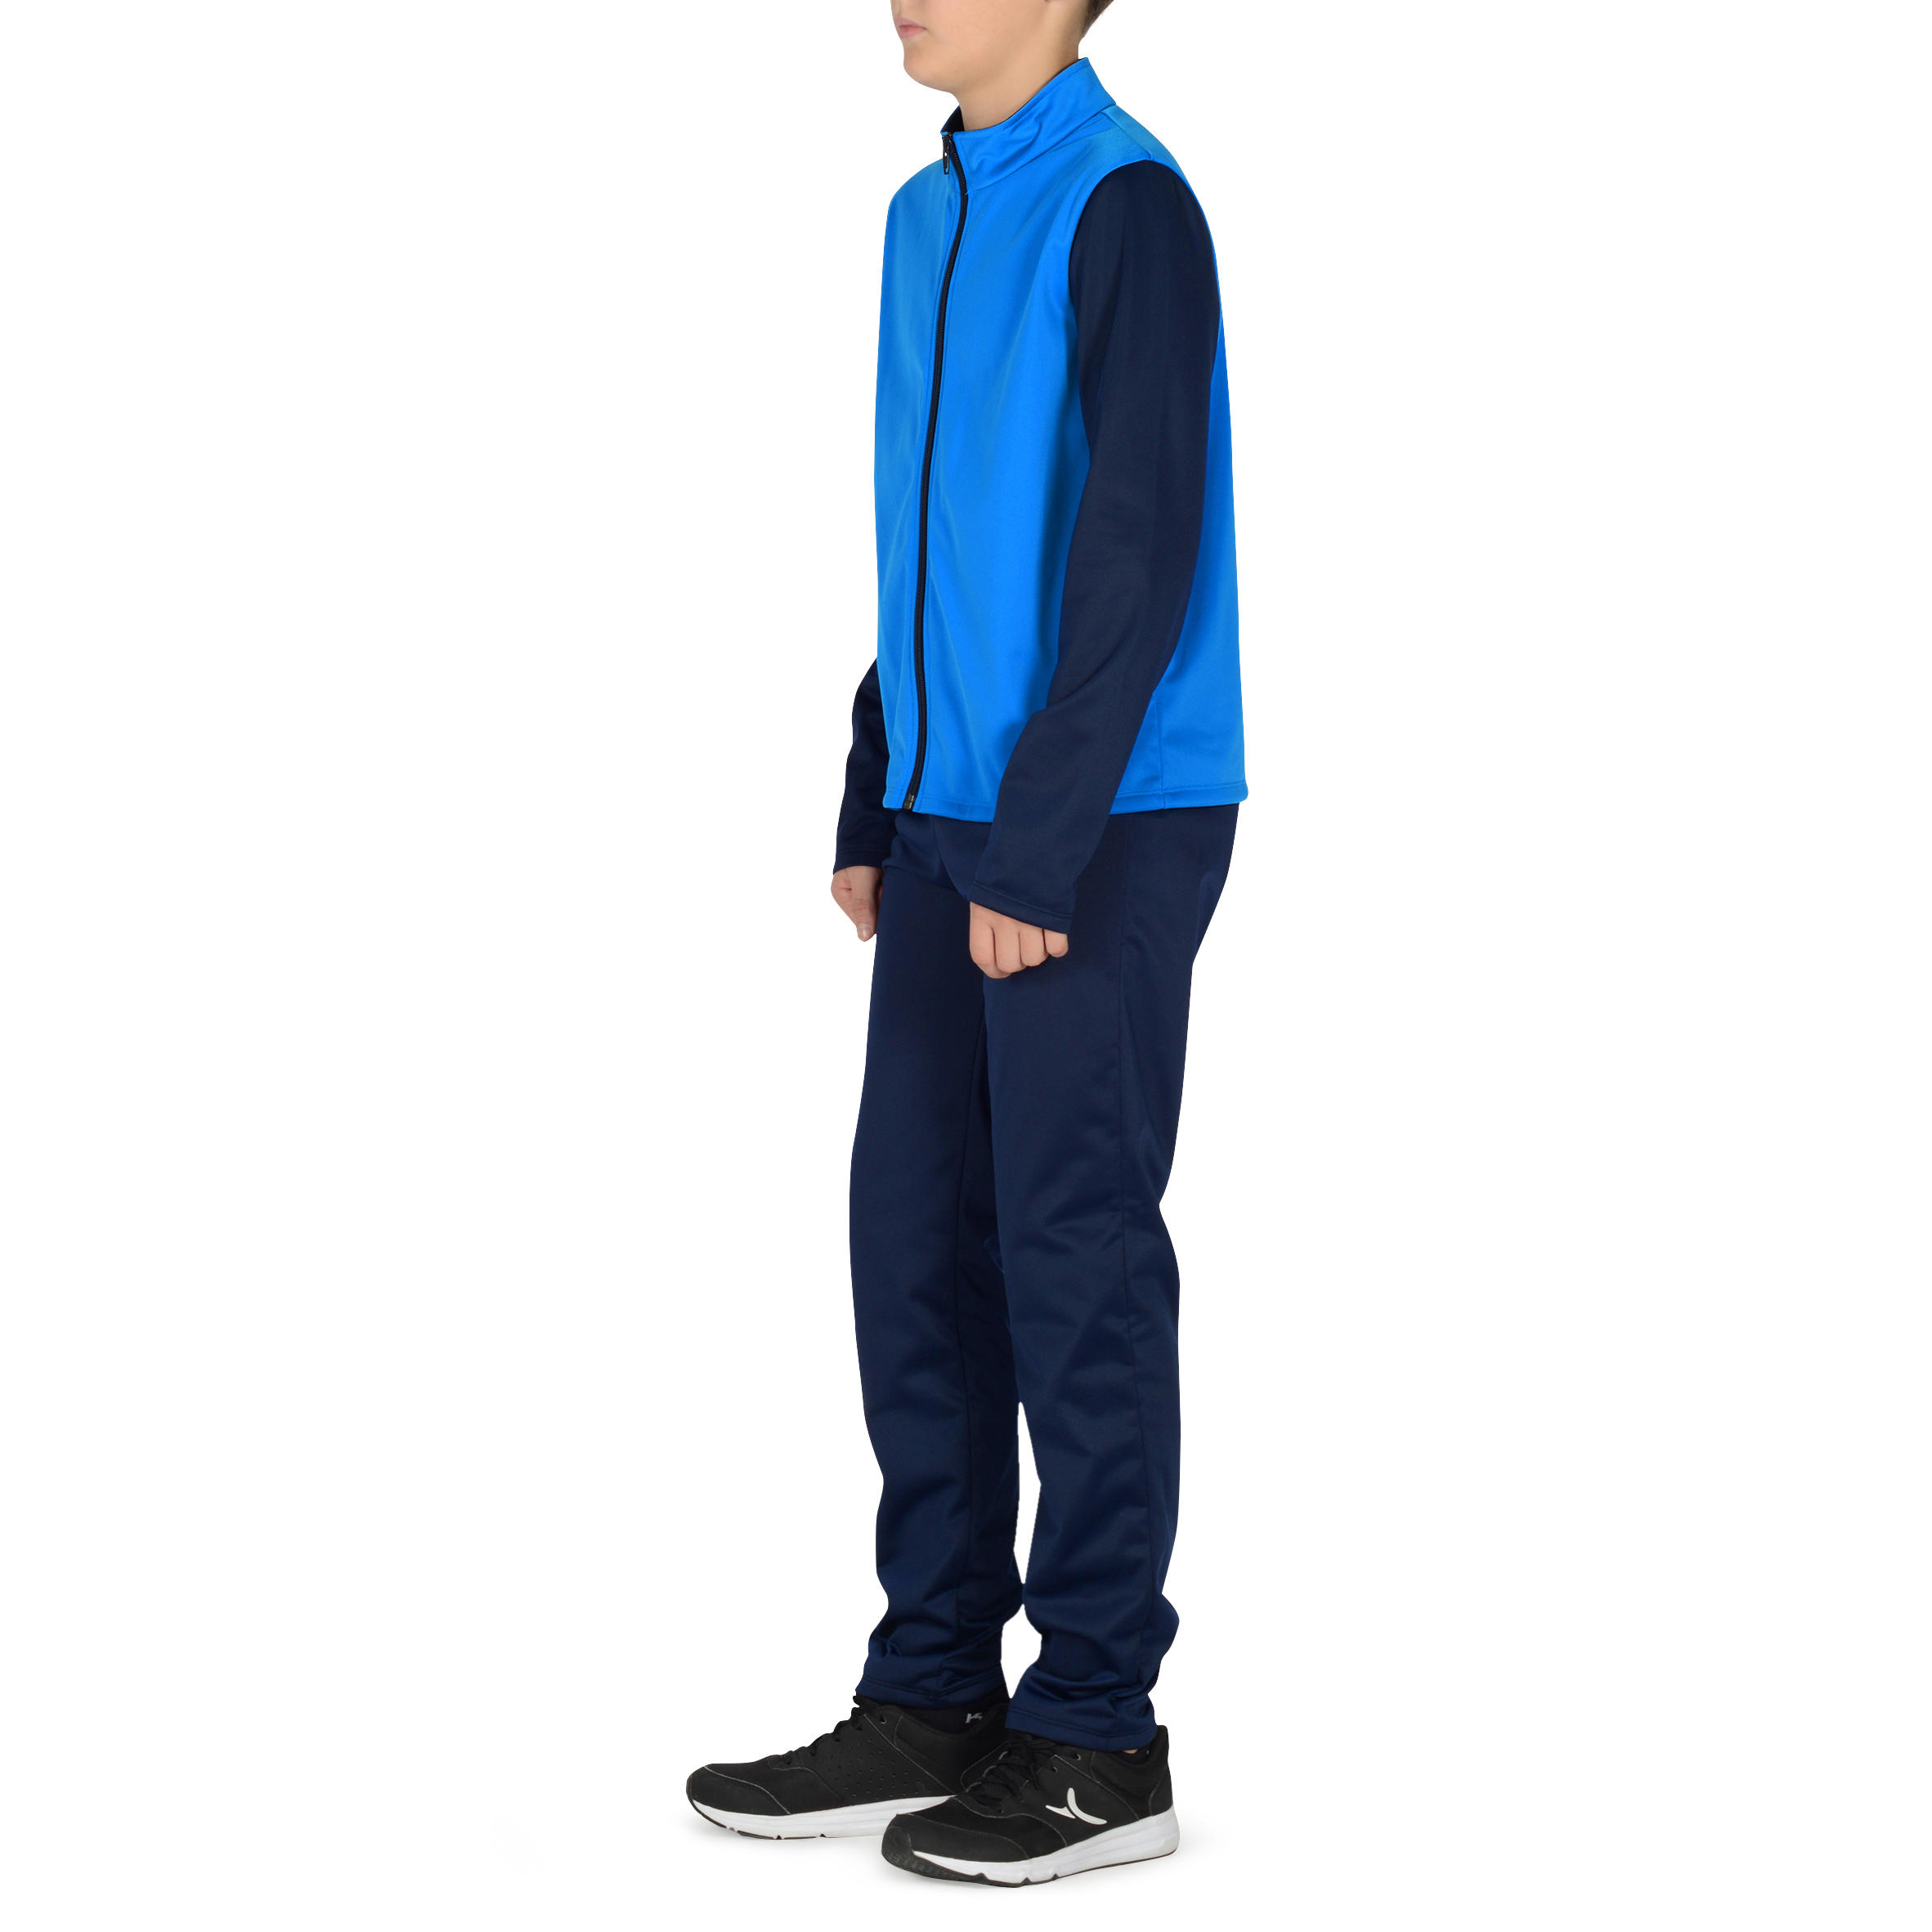 560 Boys' Gym Tracksuit - Blue